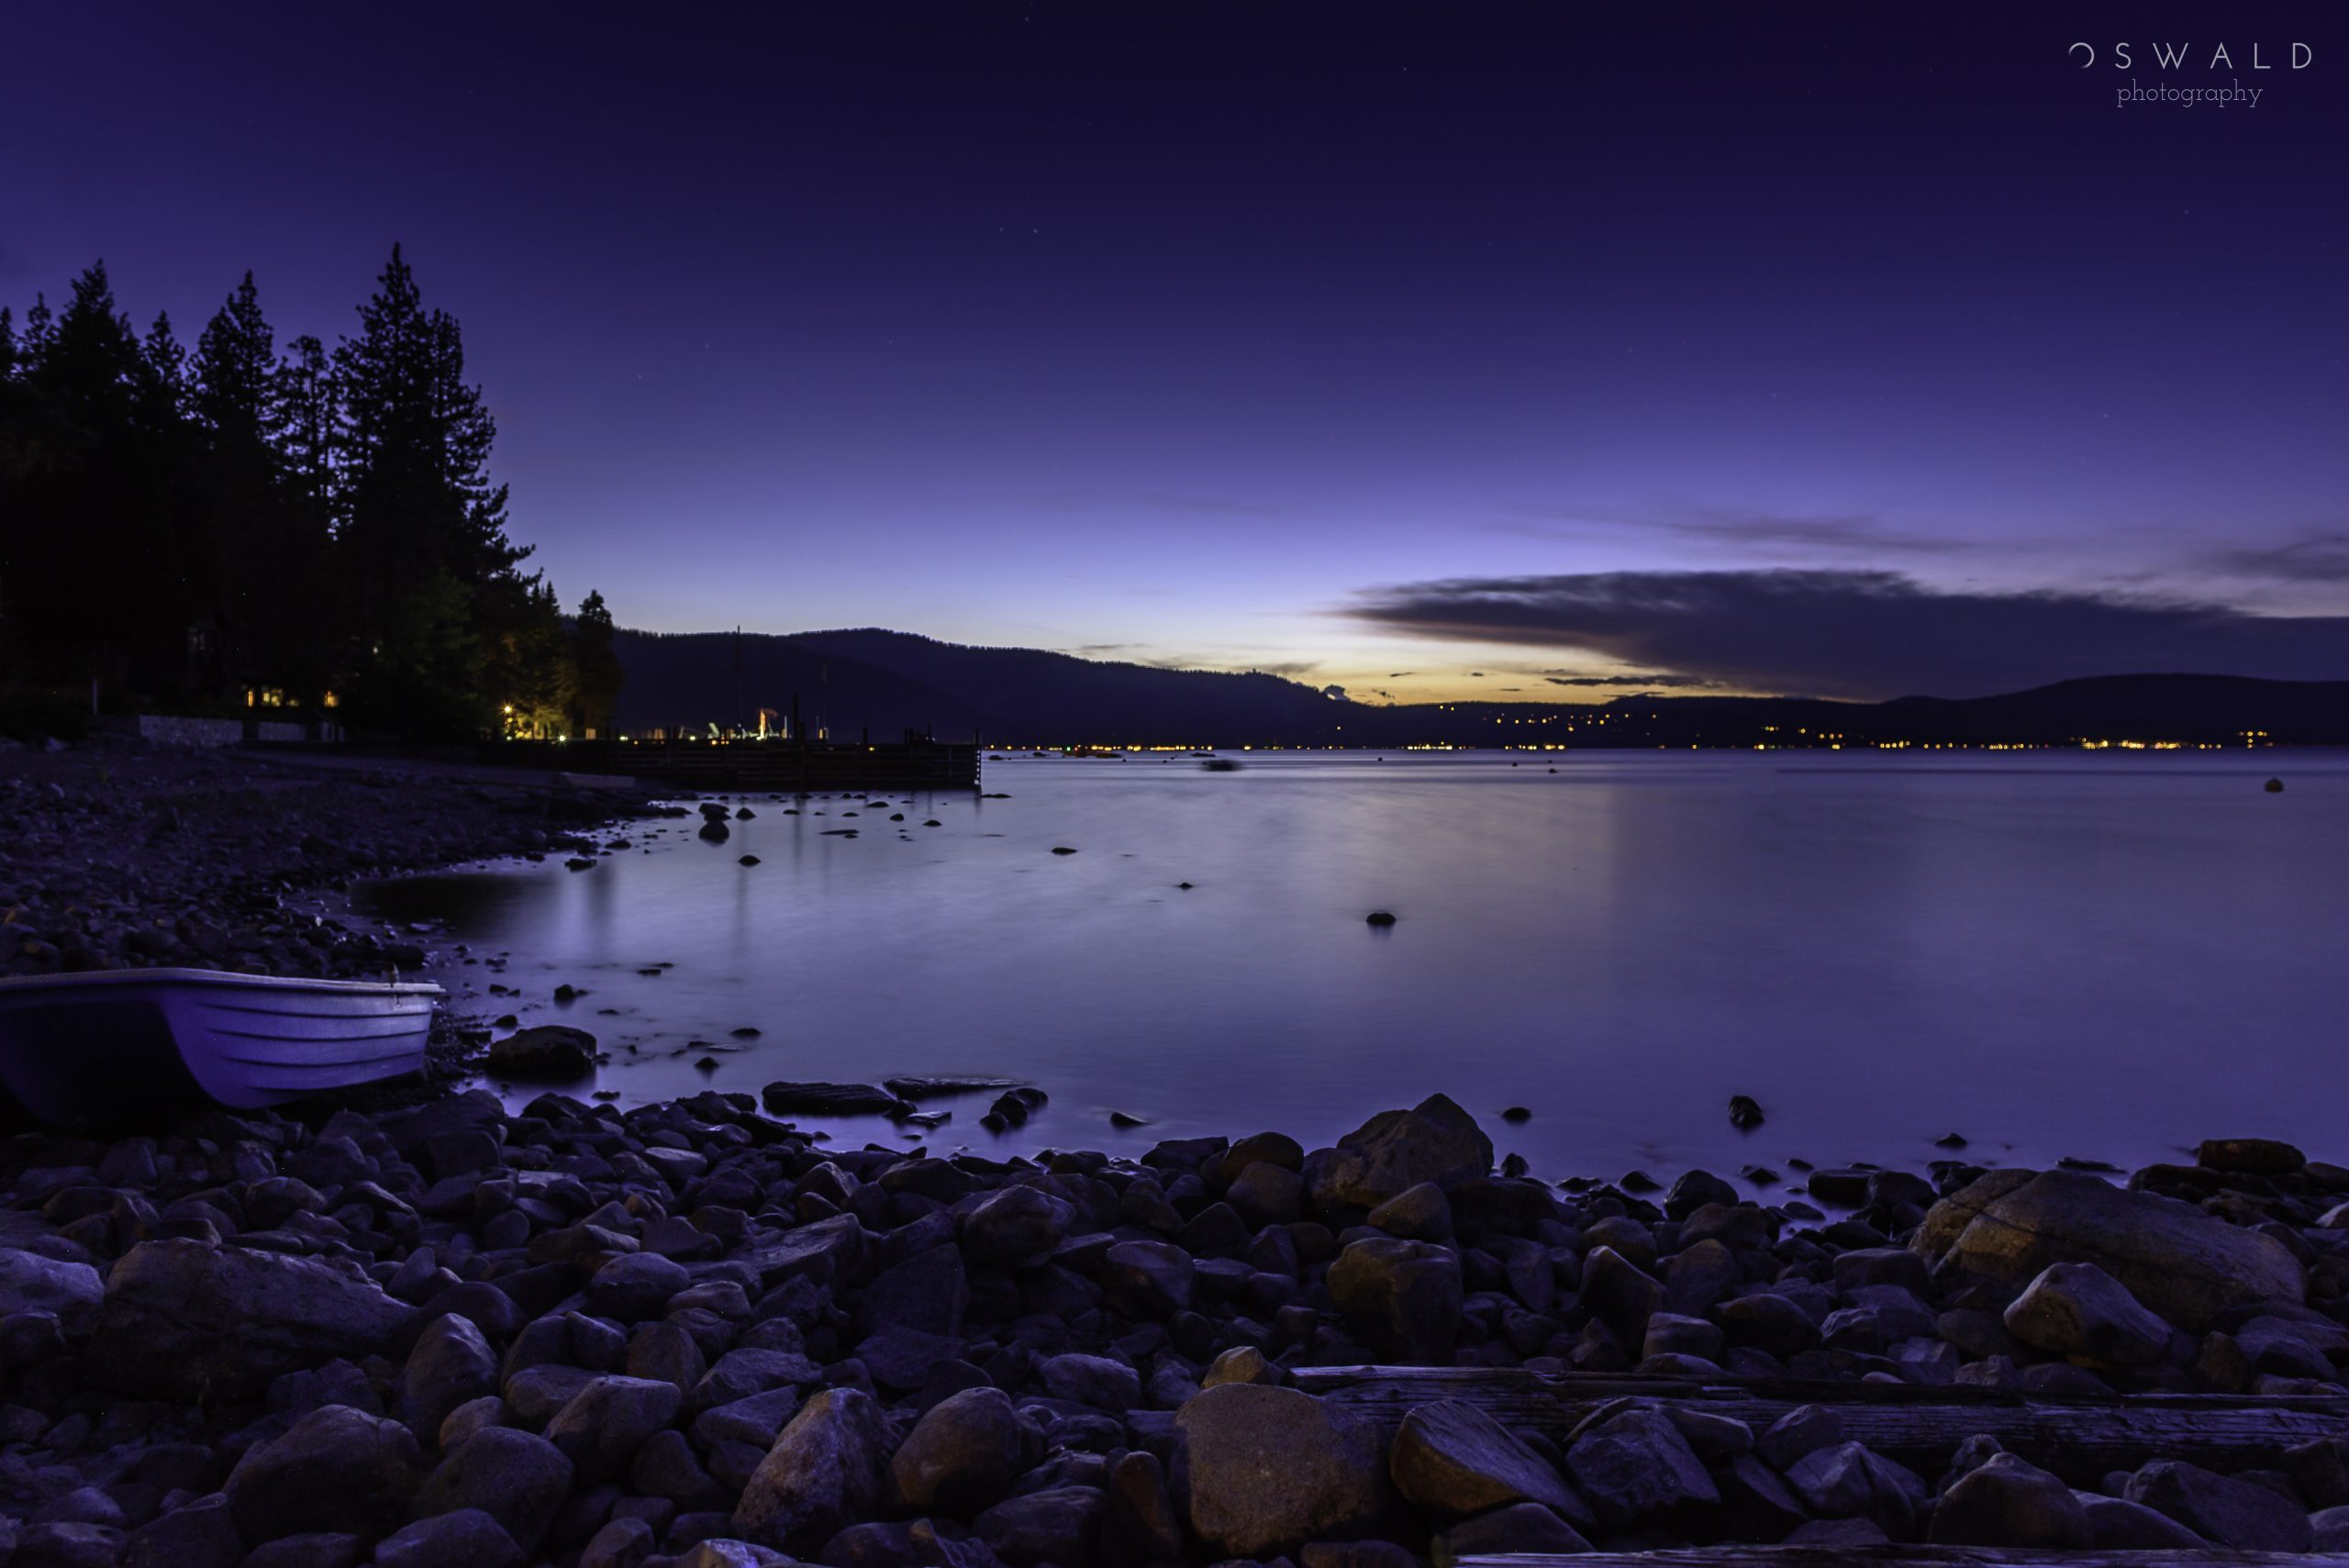 Long exposure nighttime photography upon the shores of North Lake Tahoe as the stars begin to shine.